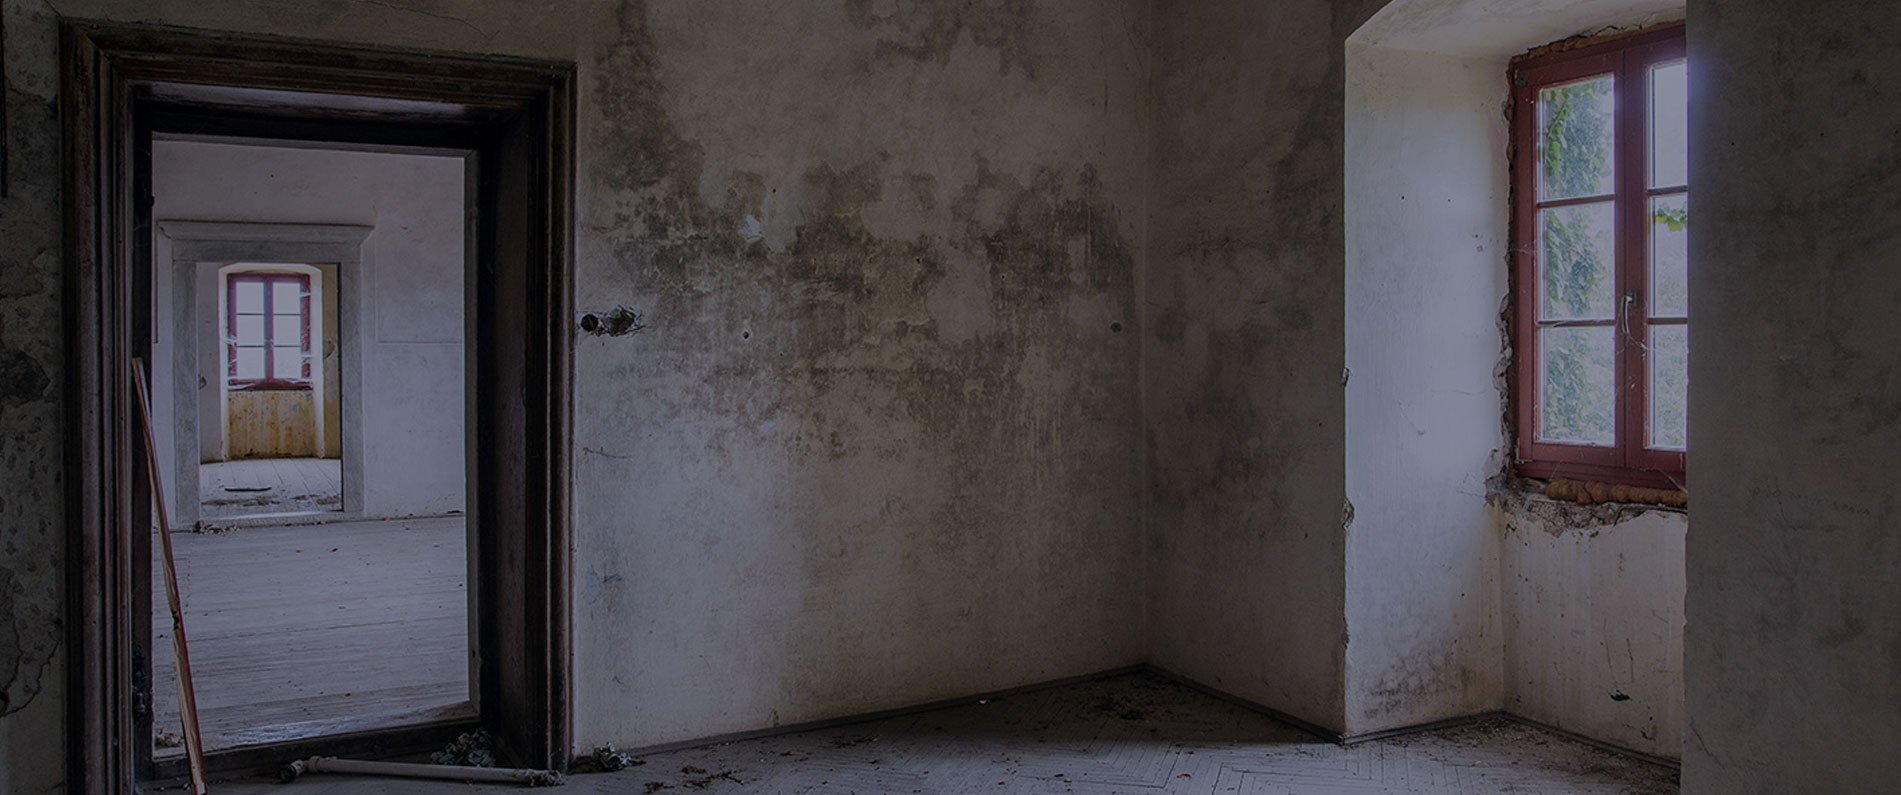 walls with water damage